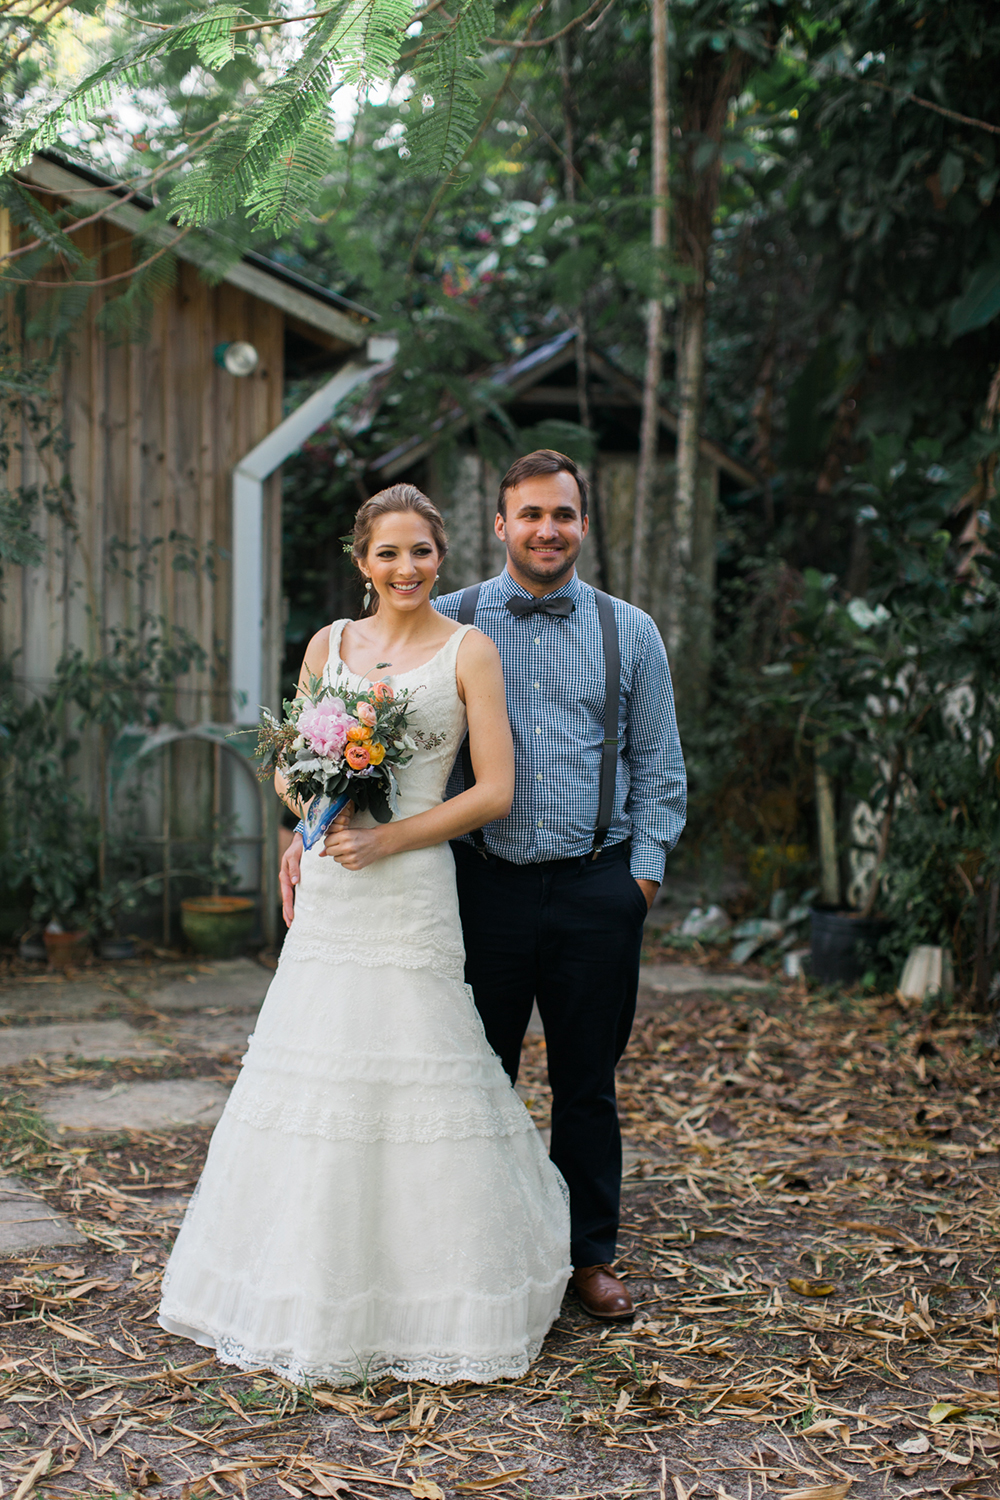 Waldos_Secret_Garden_Wedding-Finding_Light_Photography_Wedding-Florida_Wedding_Photographer-37.jpg